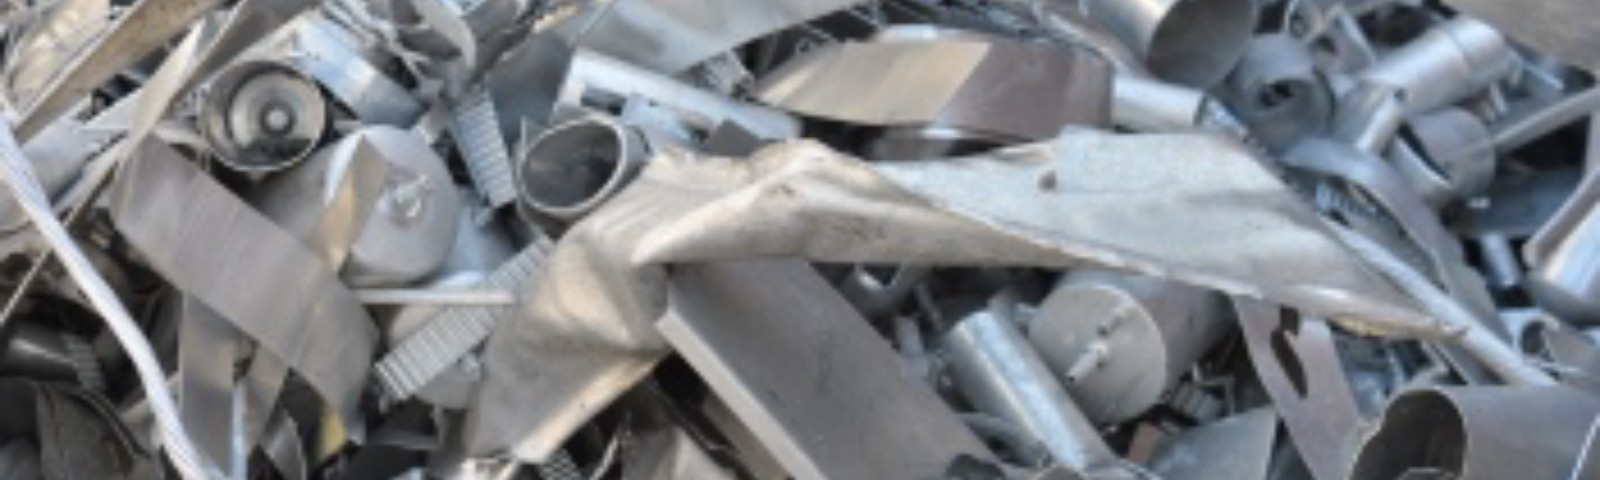 chicago metal recycling